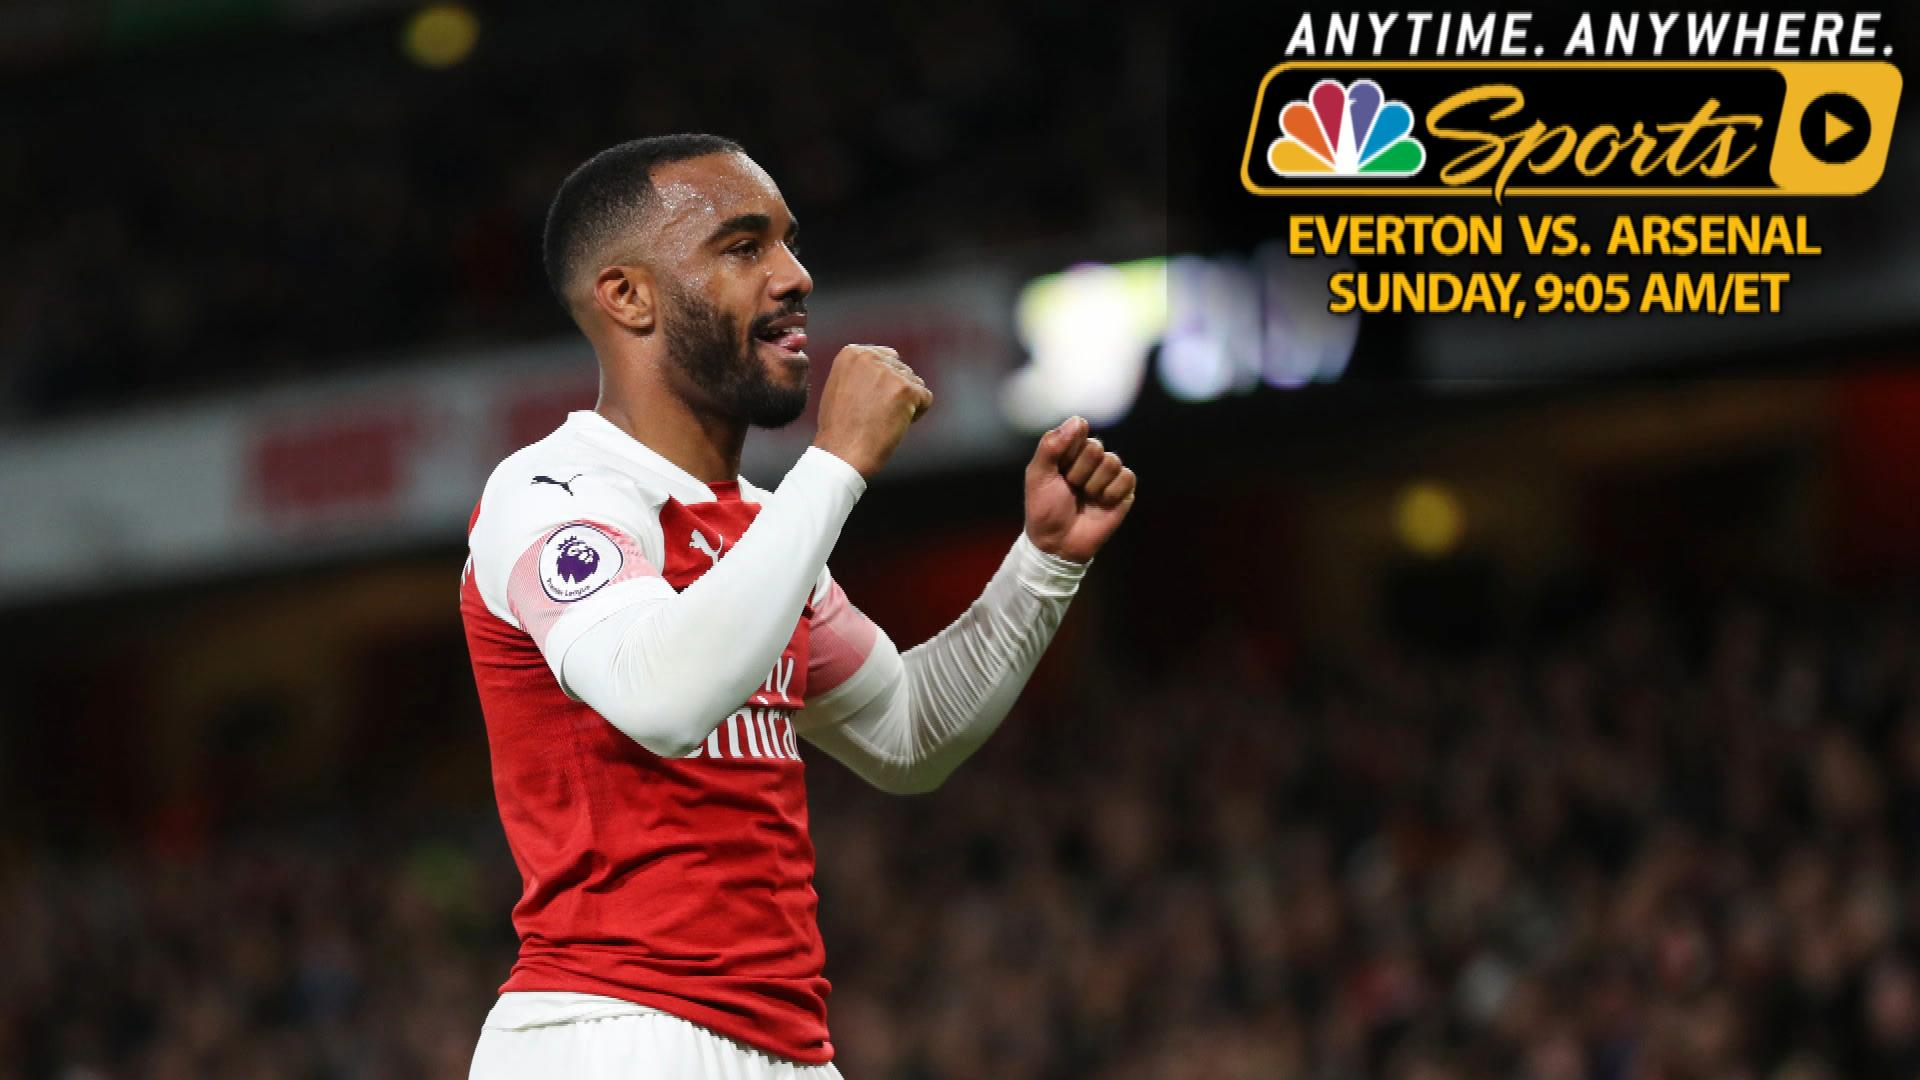 Everton v. Arsenal preview Matchday 33 | NBC Sports